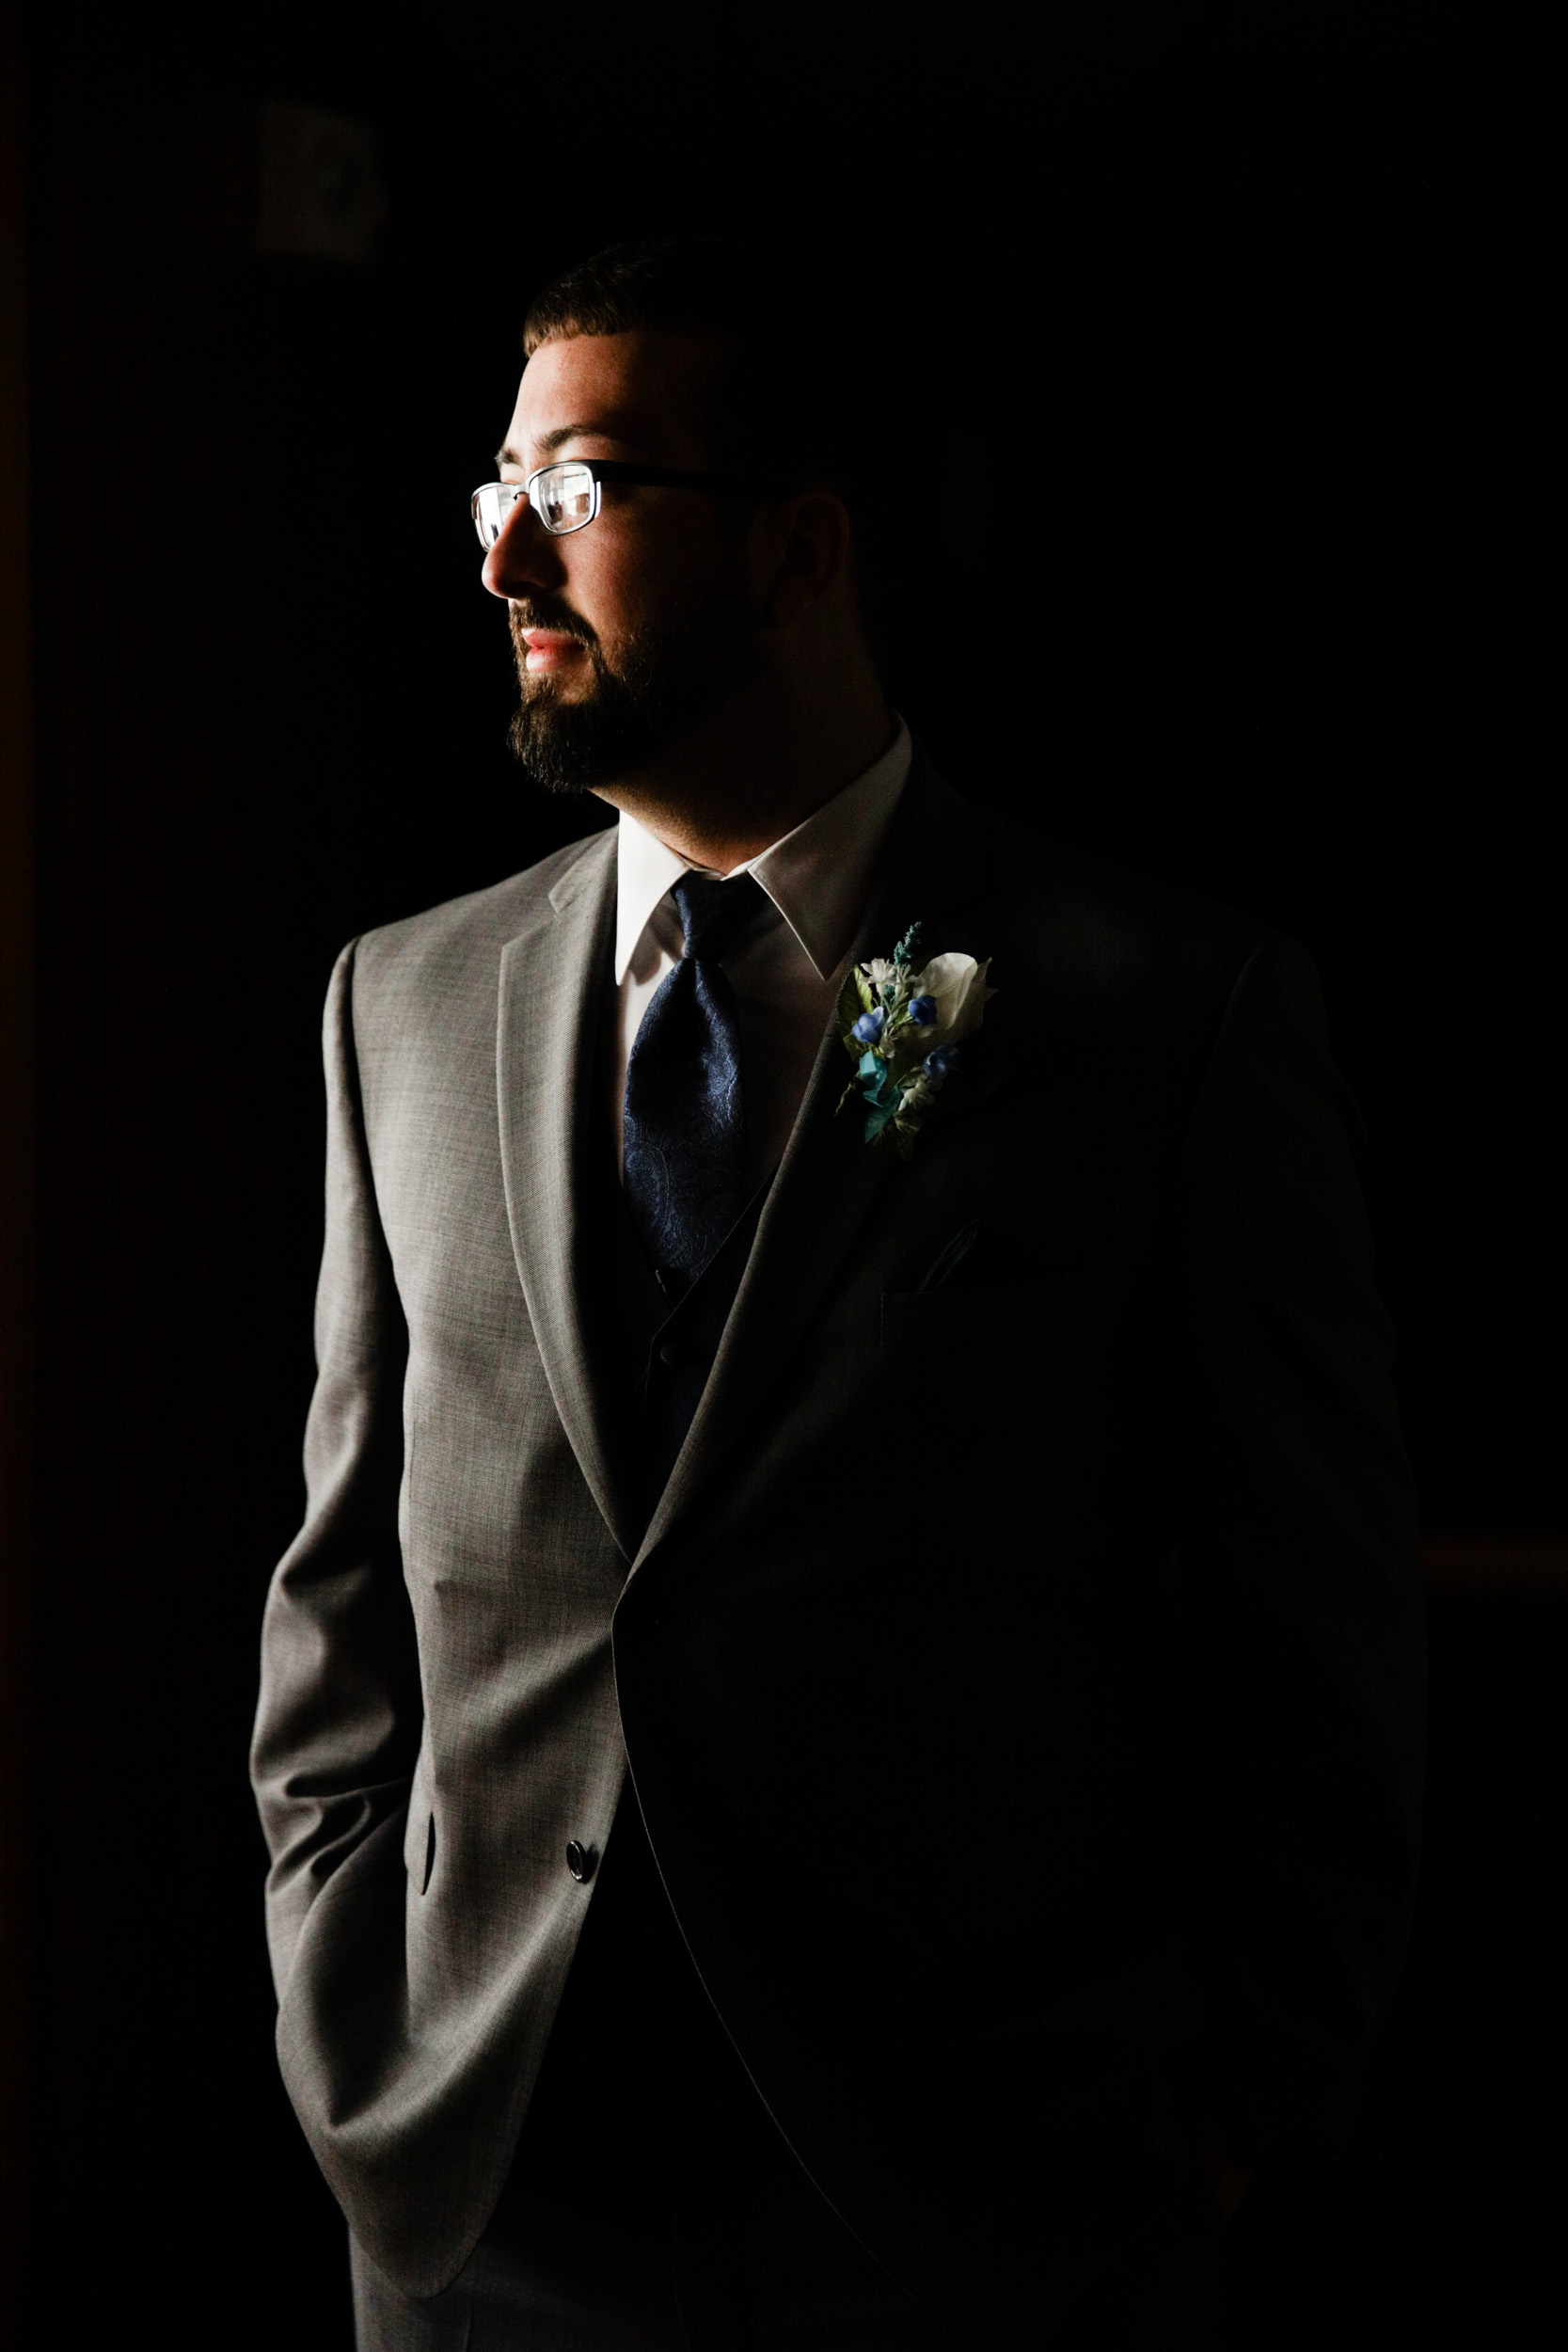 Winstanley Baptist Church Wedding and Four Points by Sheraton Reception Photos by St Louis Wedding Photographers and Videographers Oldani Photography 123.jpg